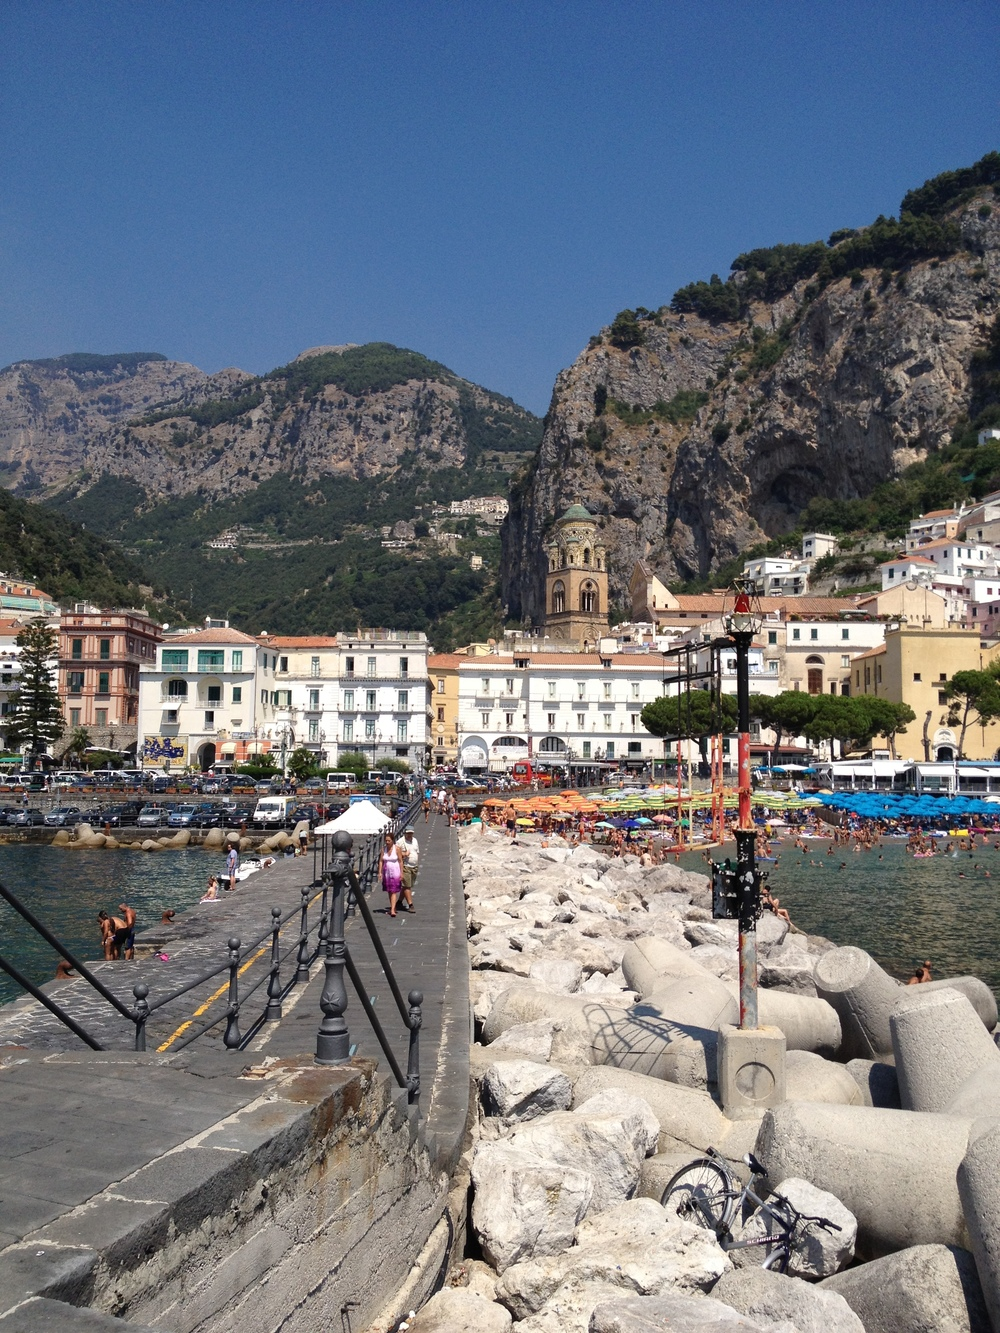 View of Amalfi from it's dock